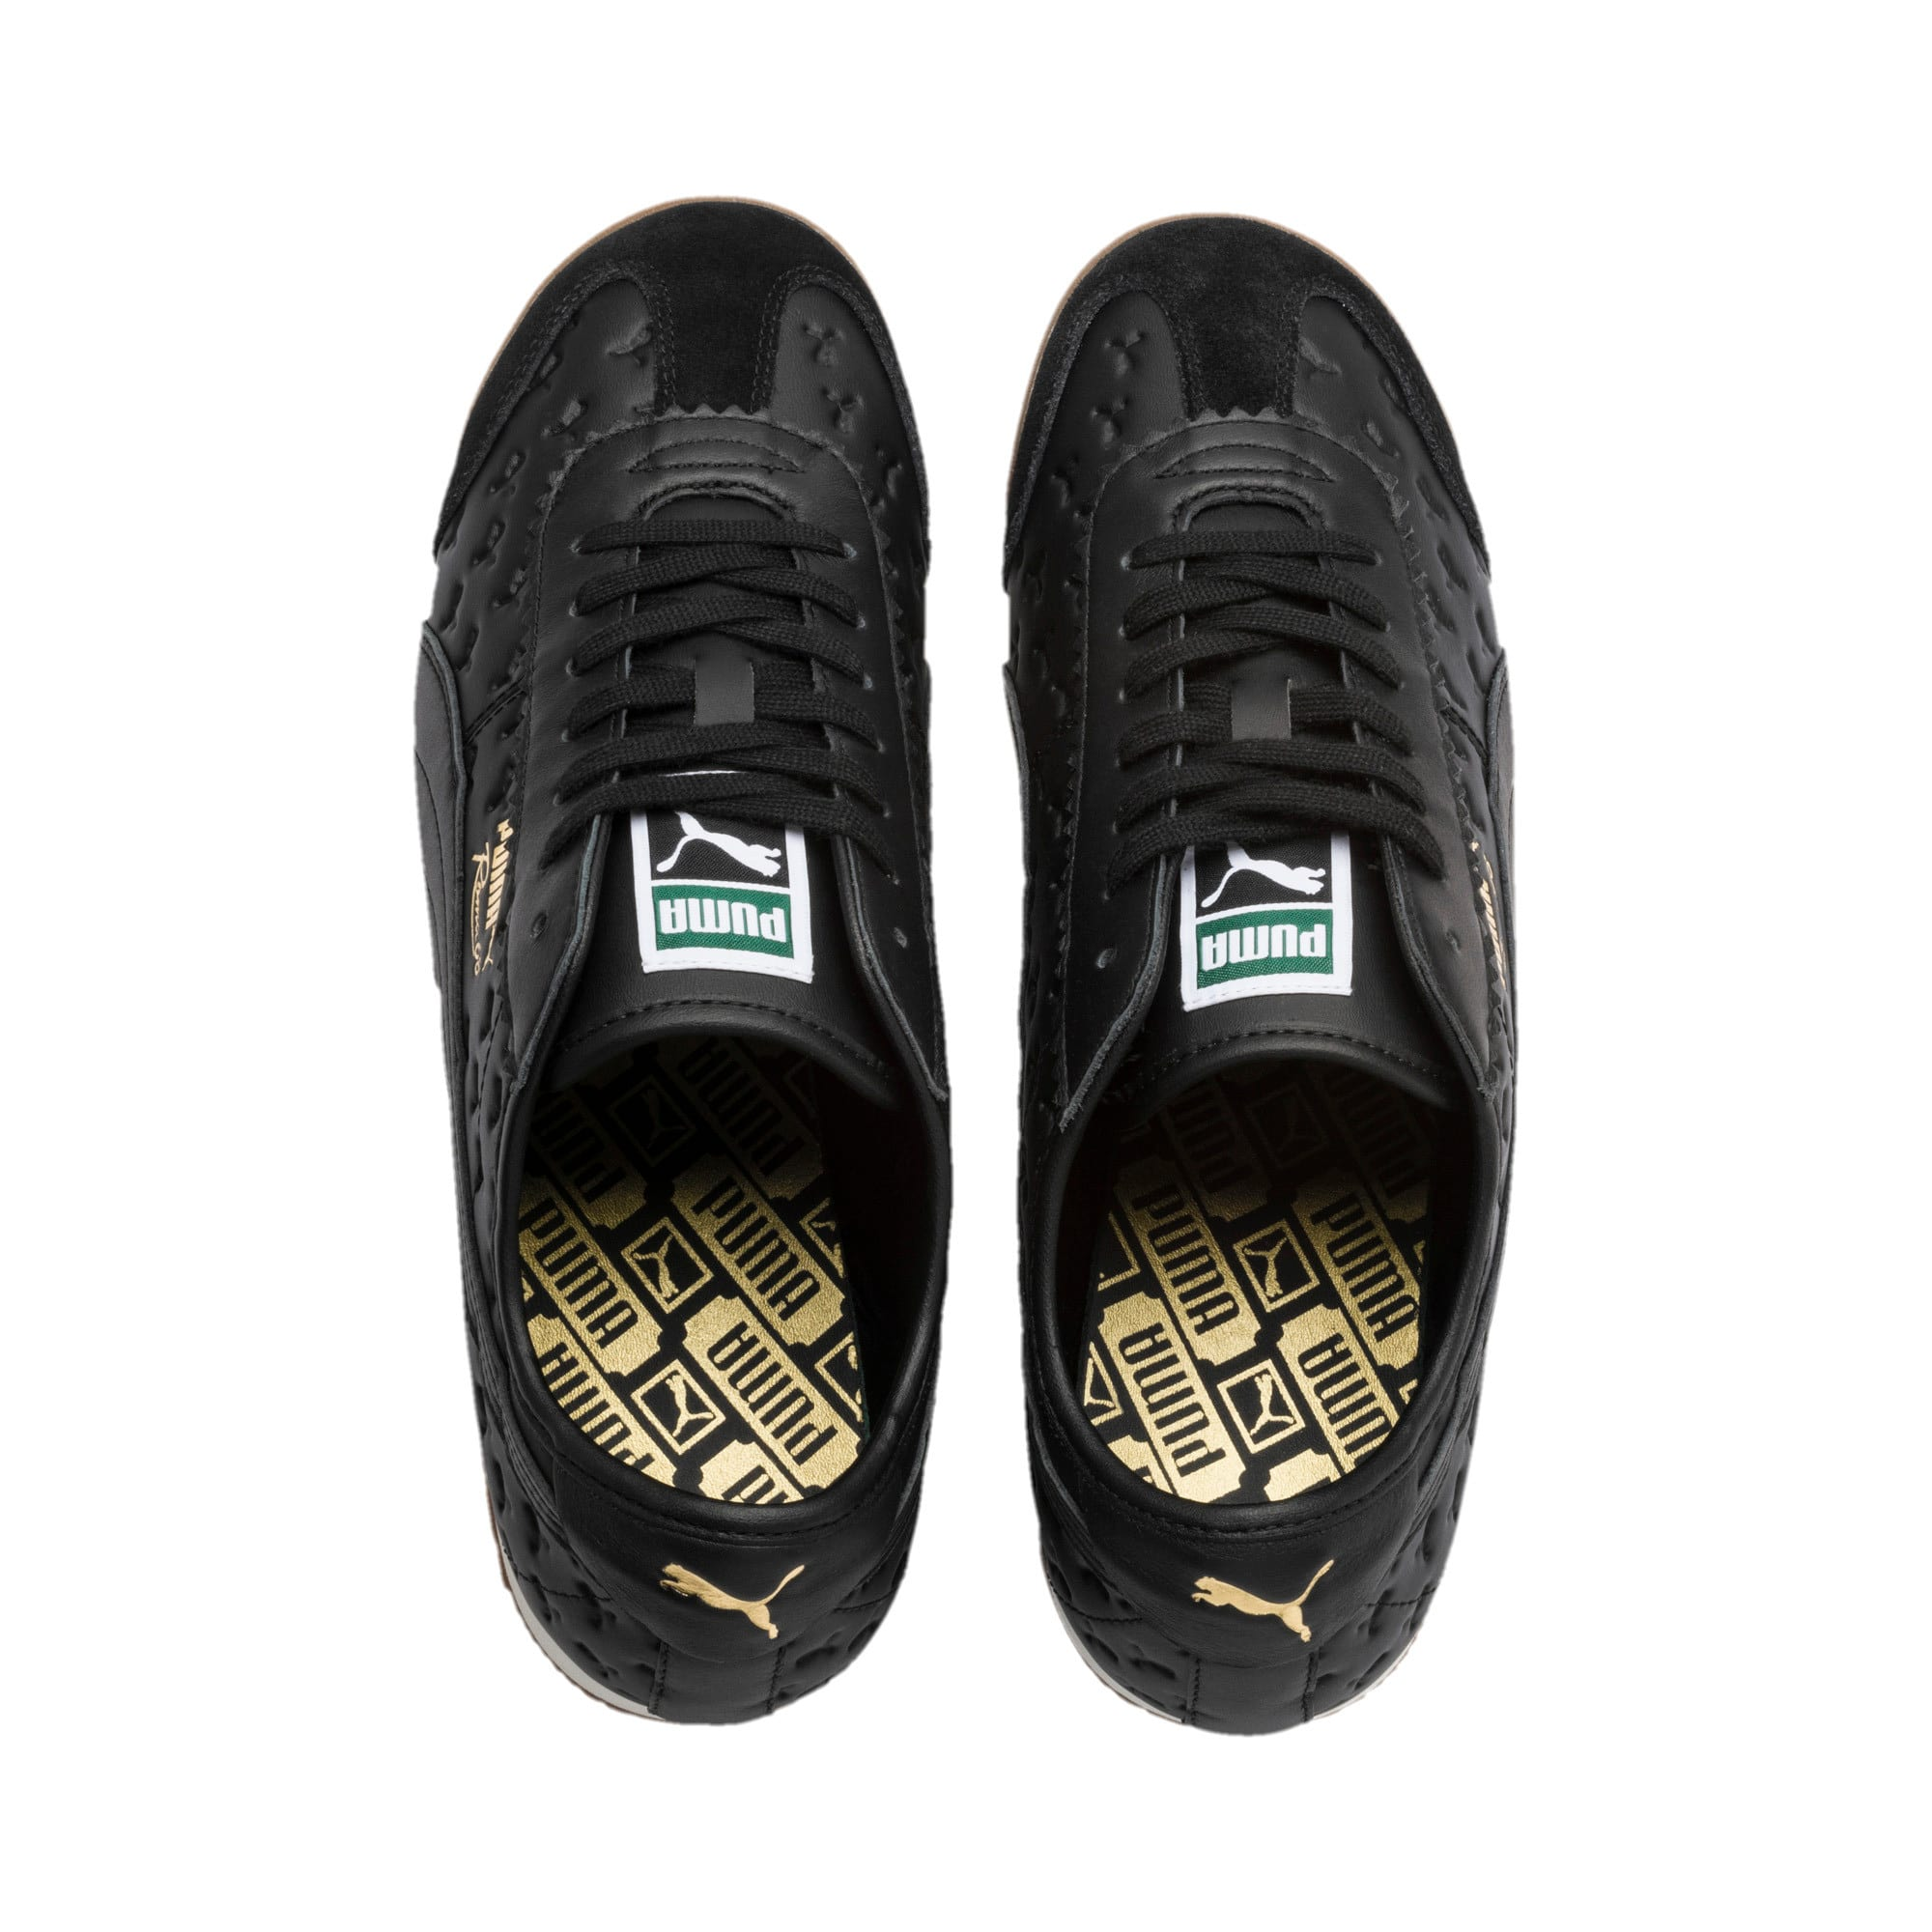 Thumbnail 7 of Roma '68 Gum Sneakers, Puma Black-Puma Black, medium